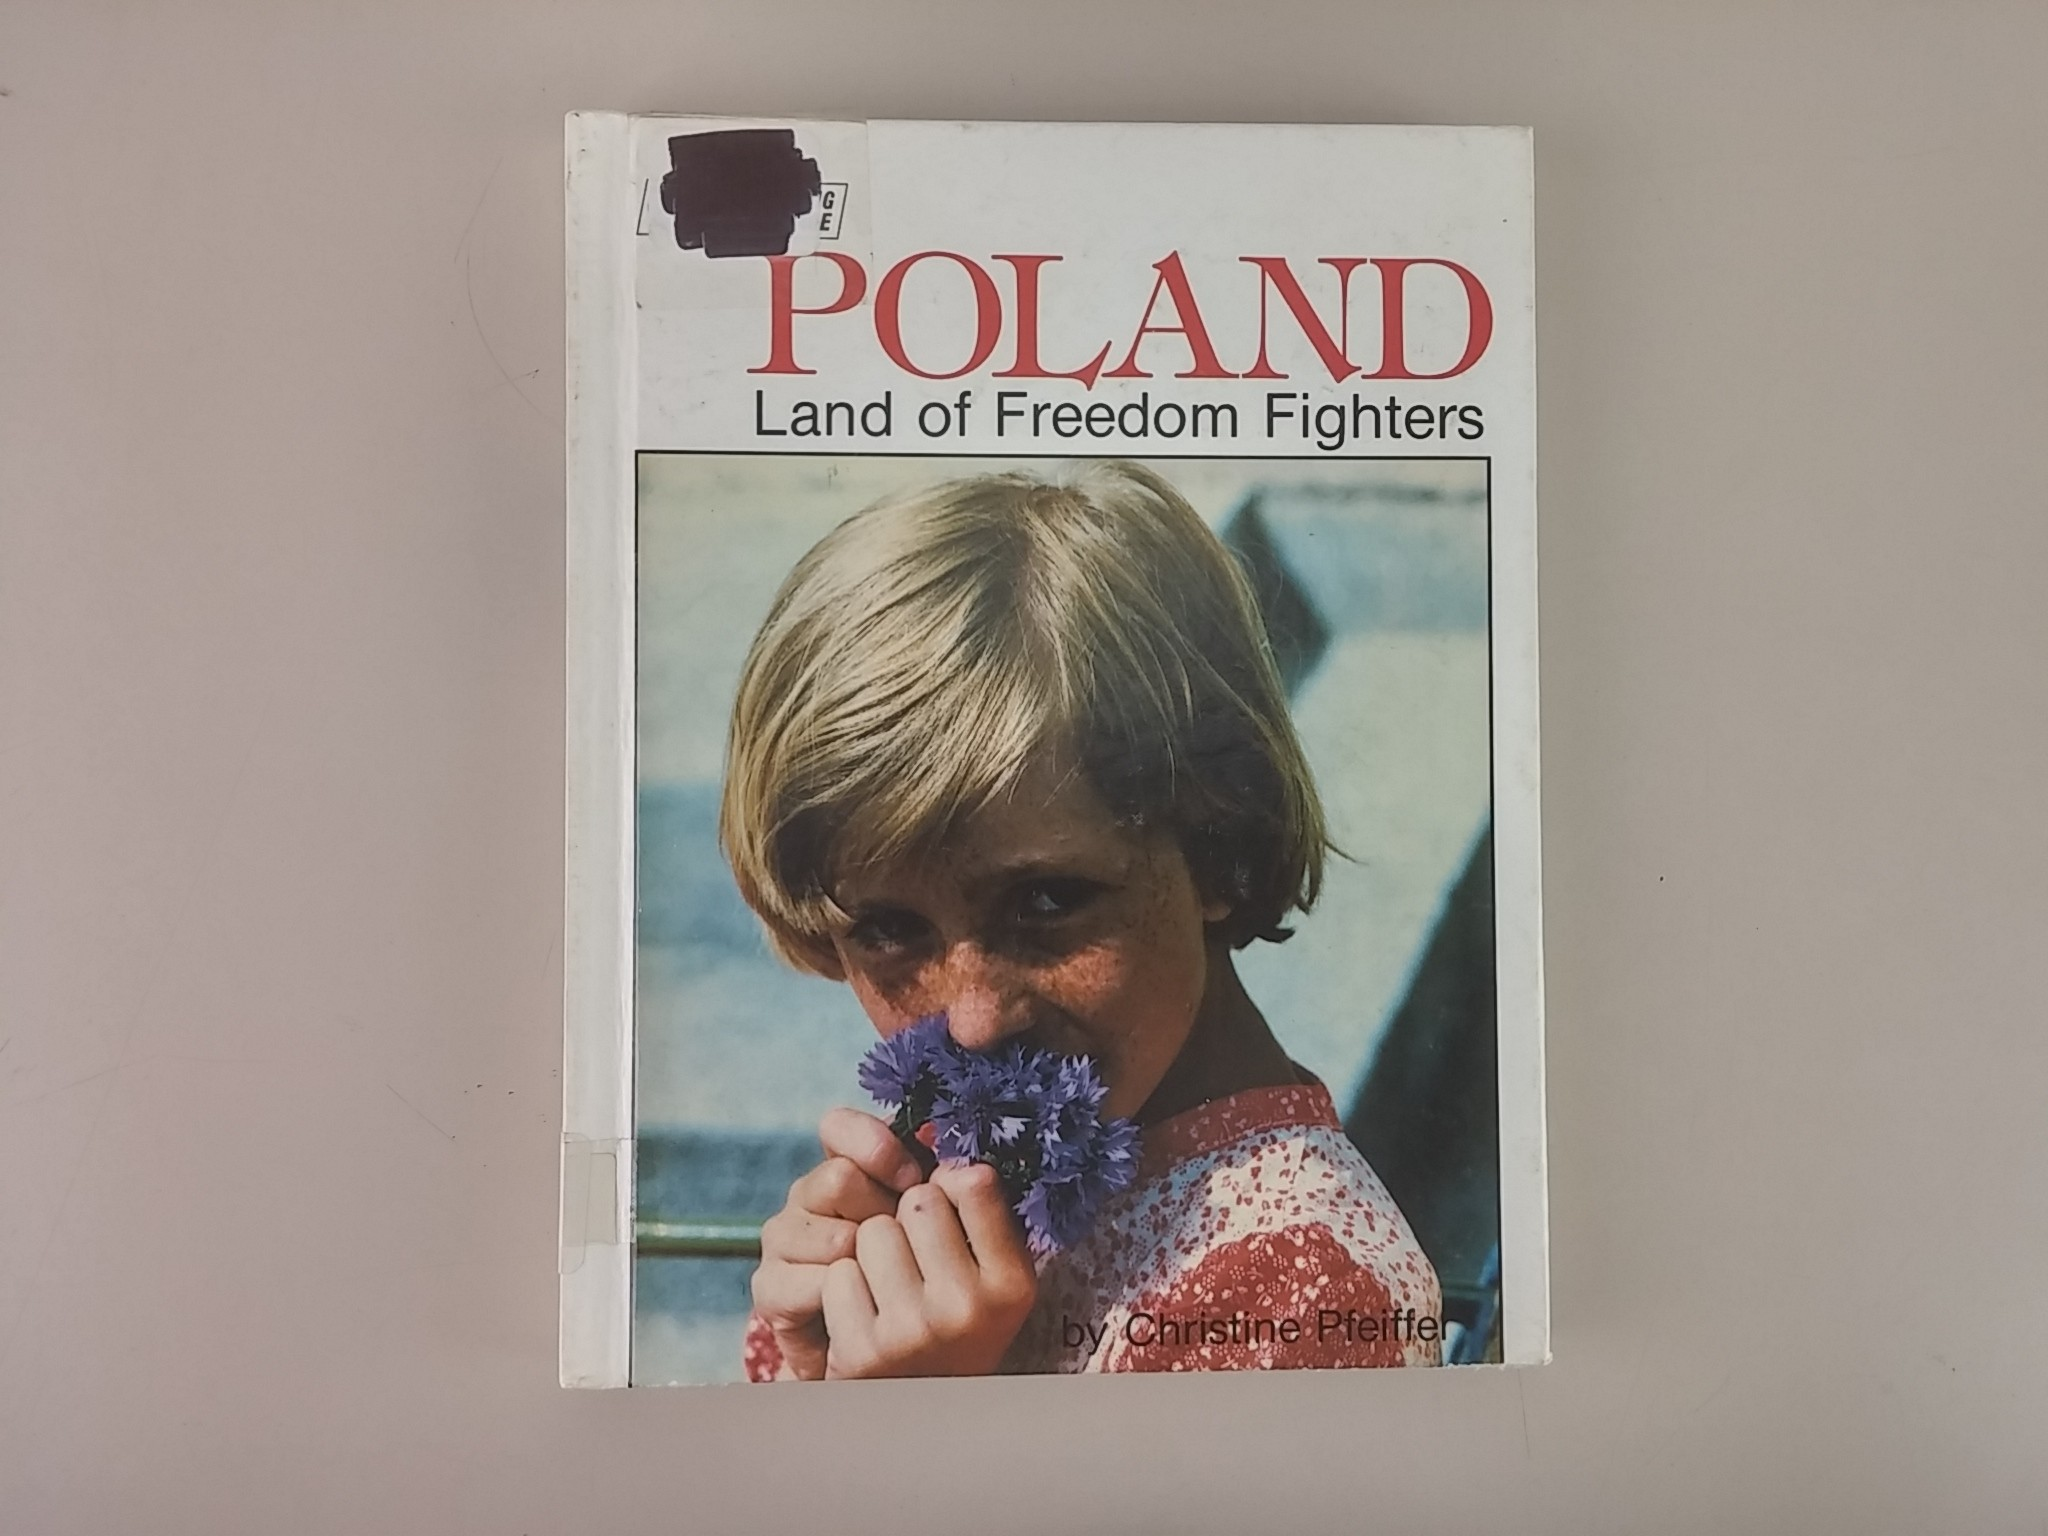 Poland: Land of Freedom Fighters